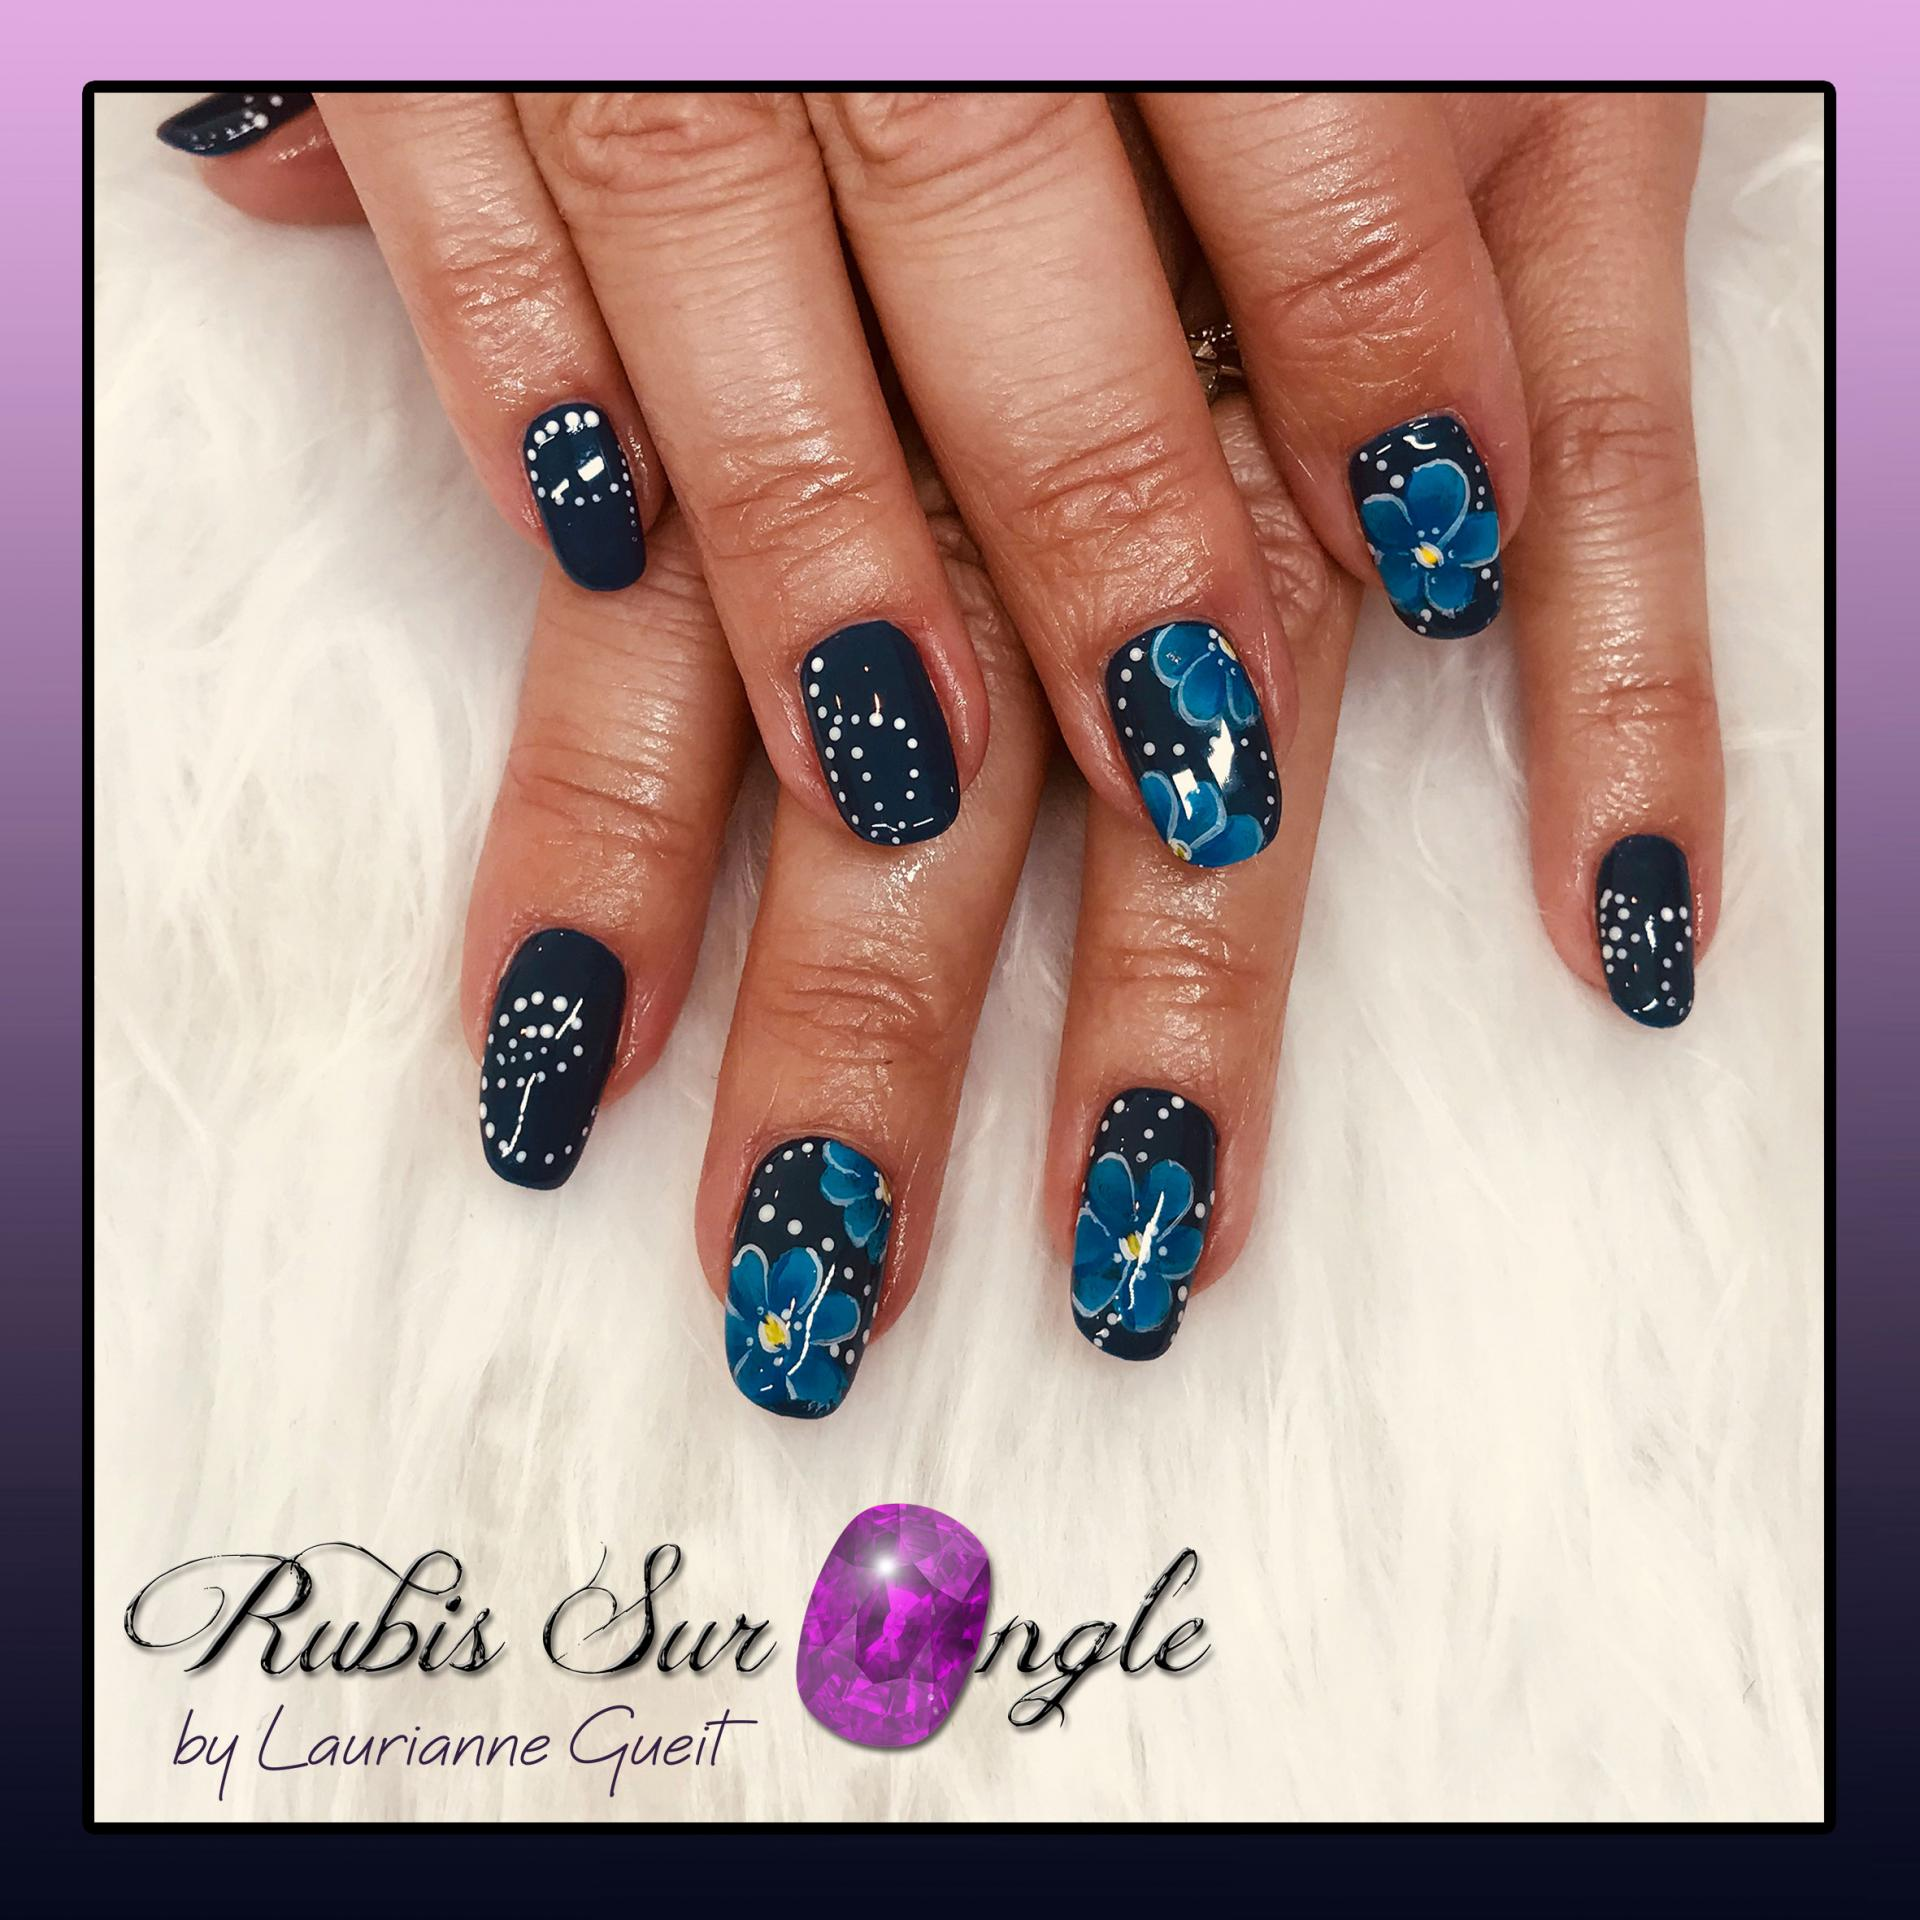 Rubis Sur Ongle Manucure nail art One Stroke